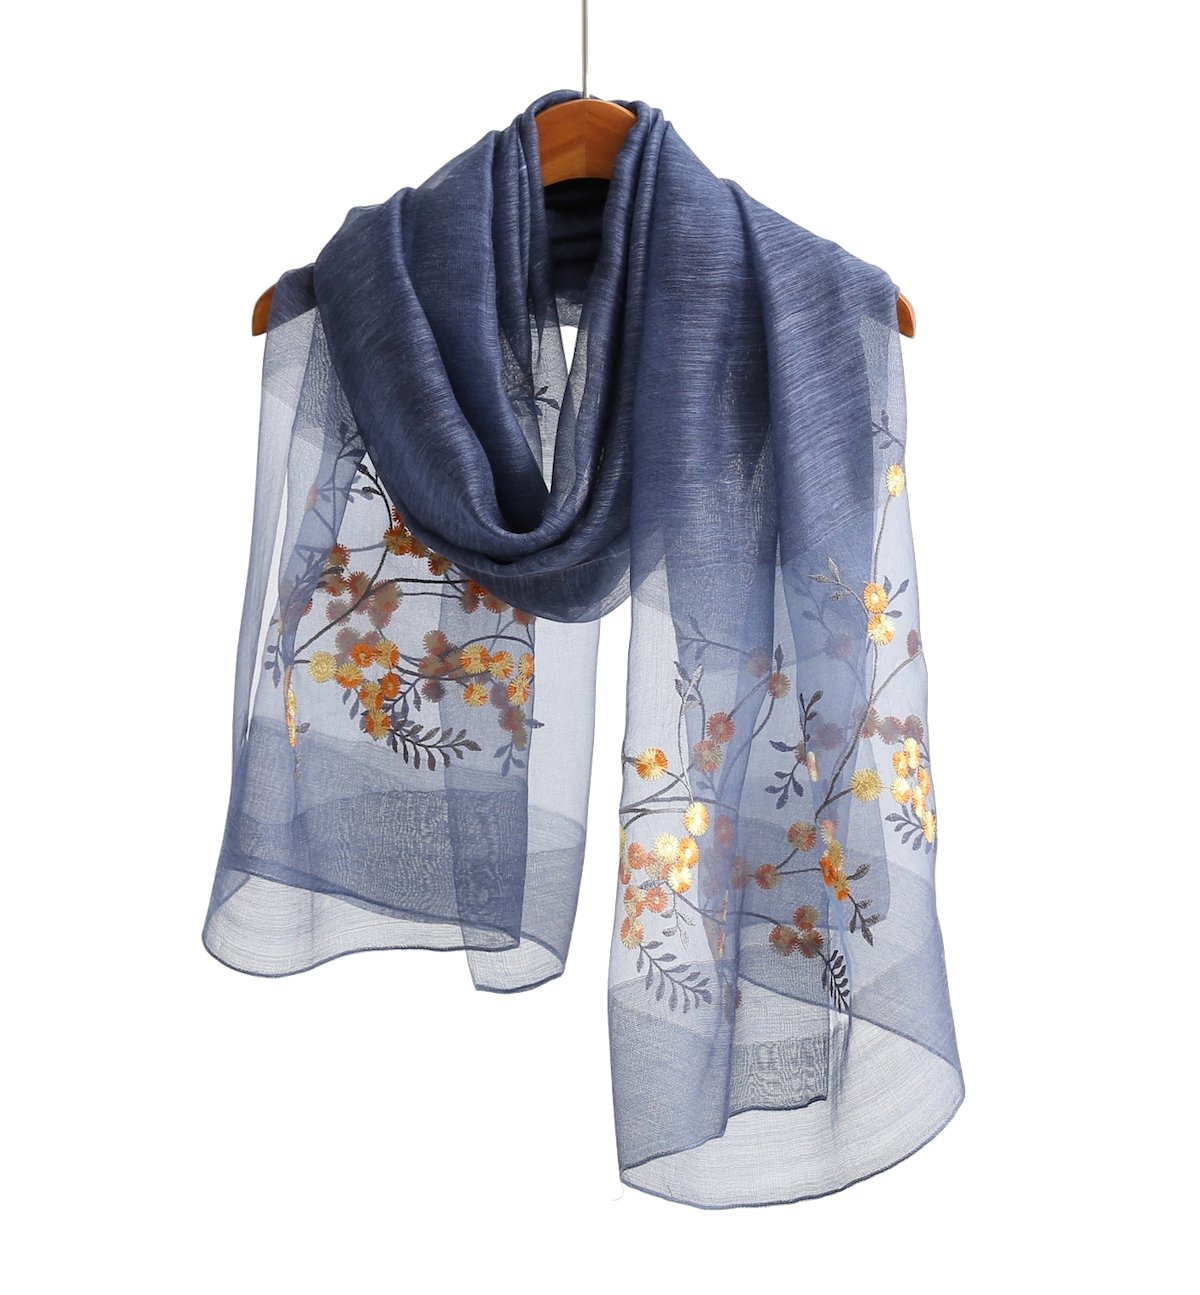 WS Natural Silk/Wool Scarf/Shawl/Wrap For Women Floral Embroidered Sheer (Blue Floral)